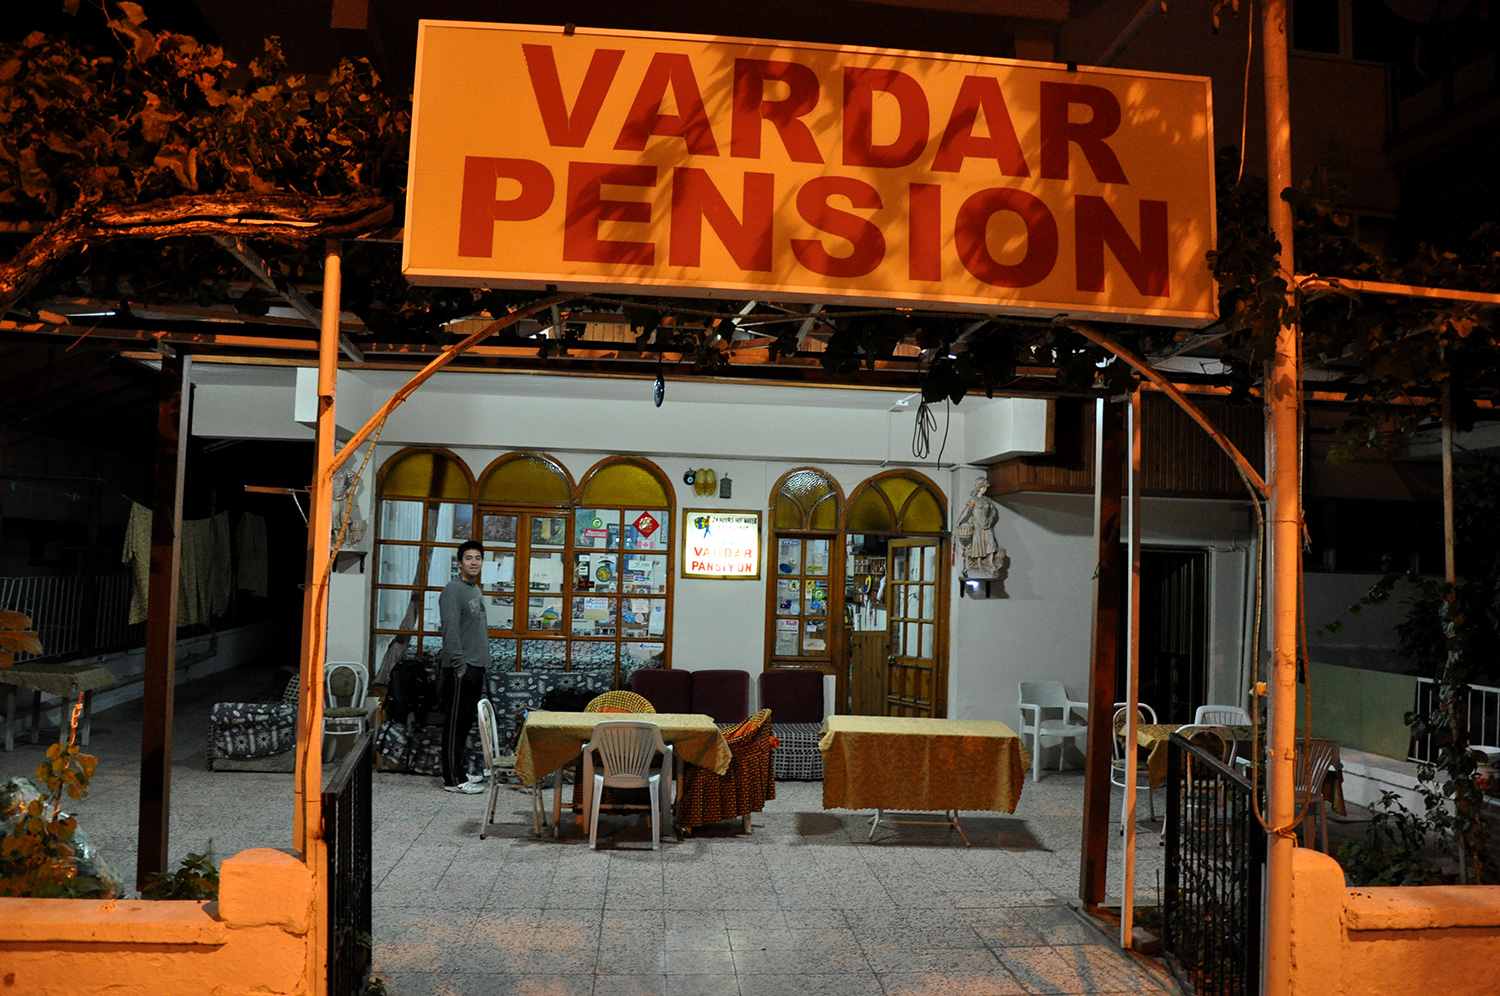 Vardar Pension